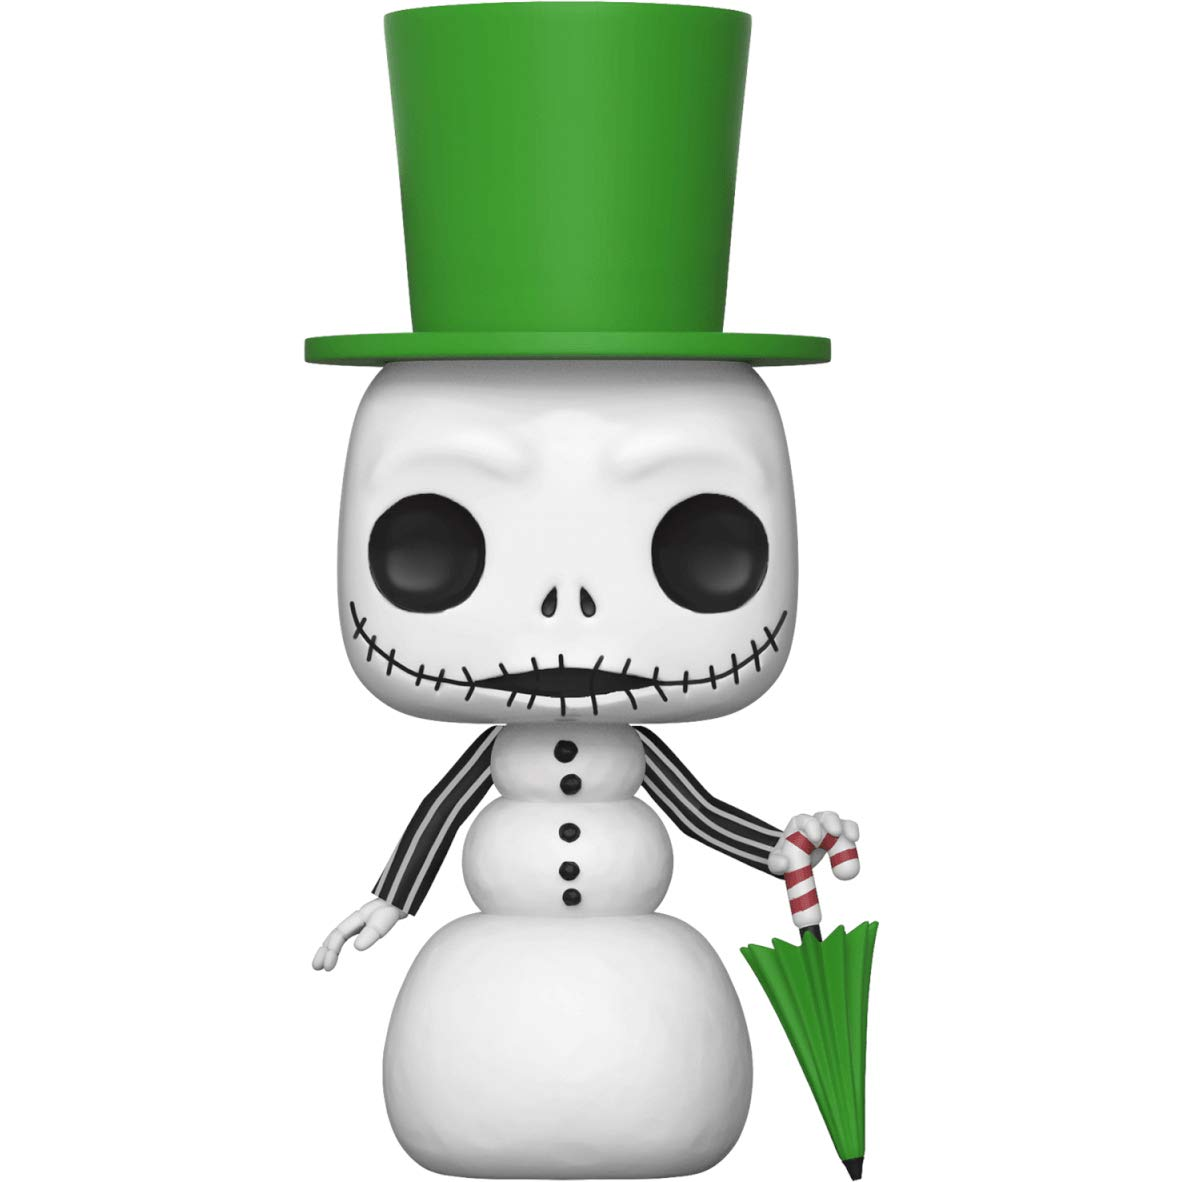 Disney Vinyl Figure /& 1 PET Plastic Graphical Protector Bundle #448 // 32836 - B BCC9408W0 Snowman Jack: The Nightmare Before Christmas x Funko POP